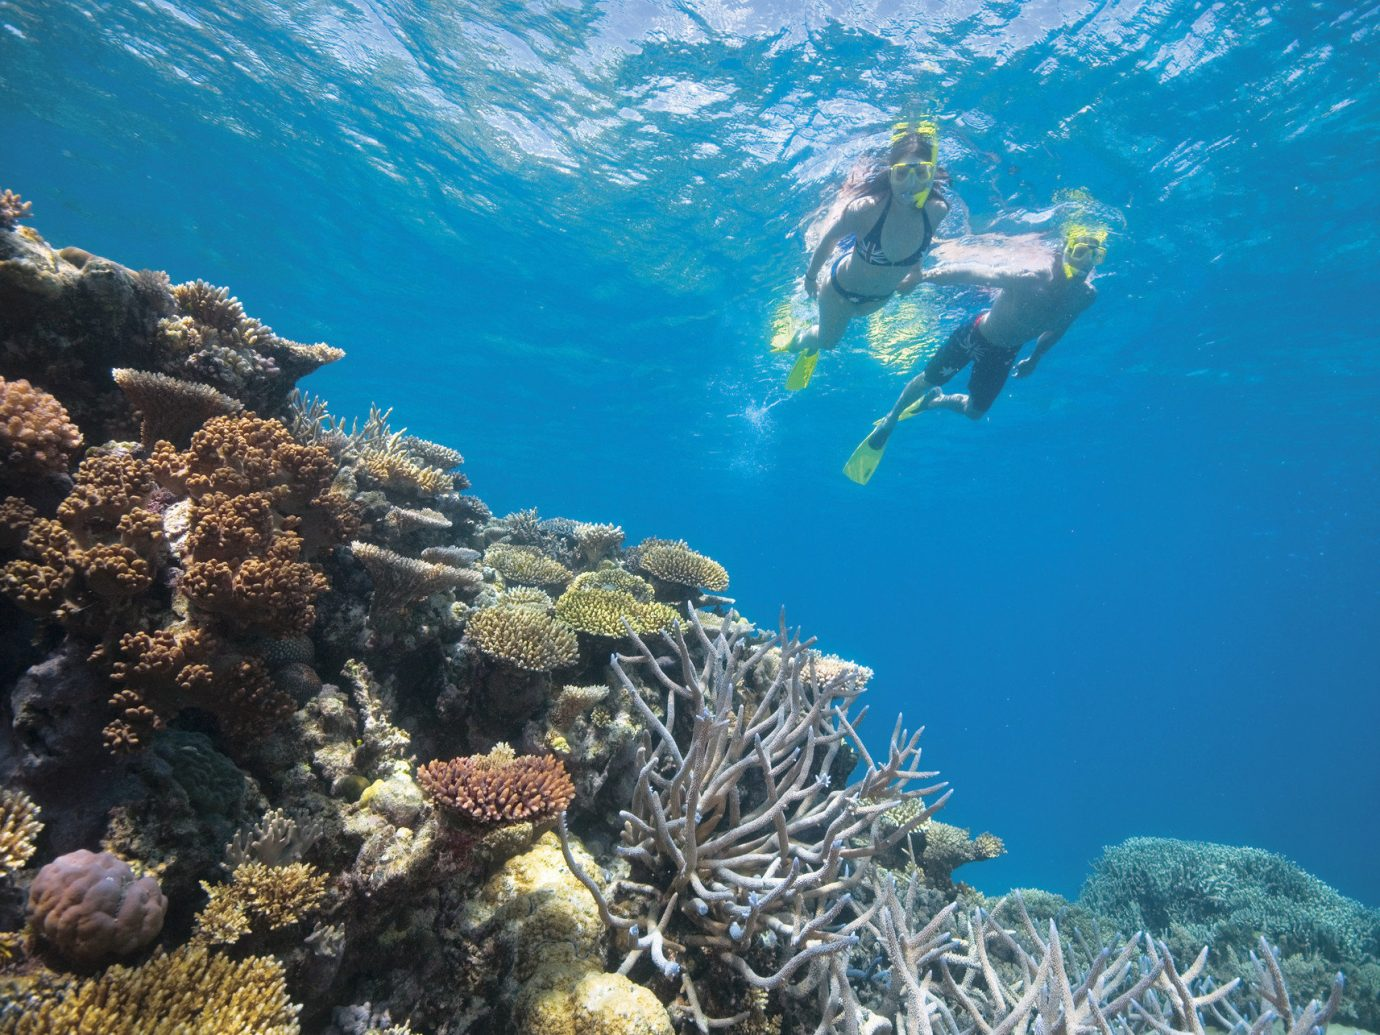 Trip Ideas coral reef reef marine biology underwater Ocean Sea rock biology Nature diving coral reef fish sports coral